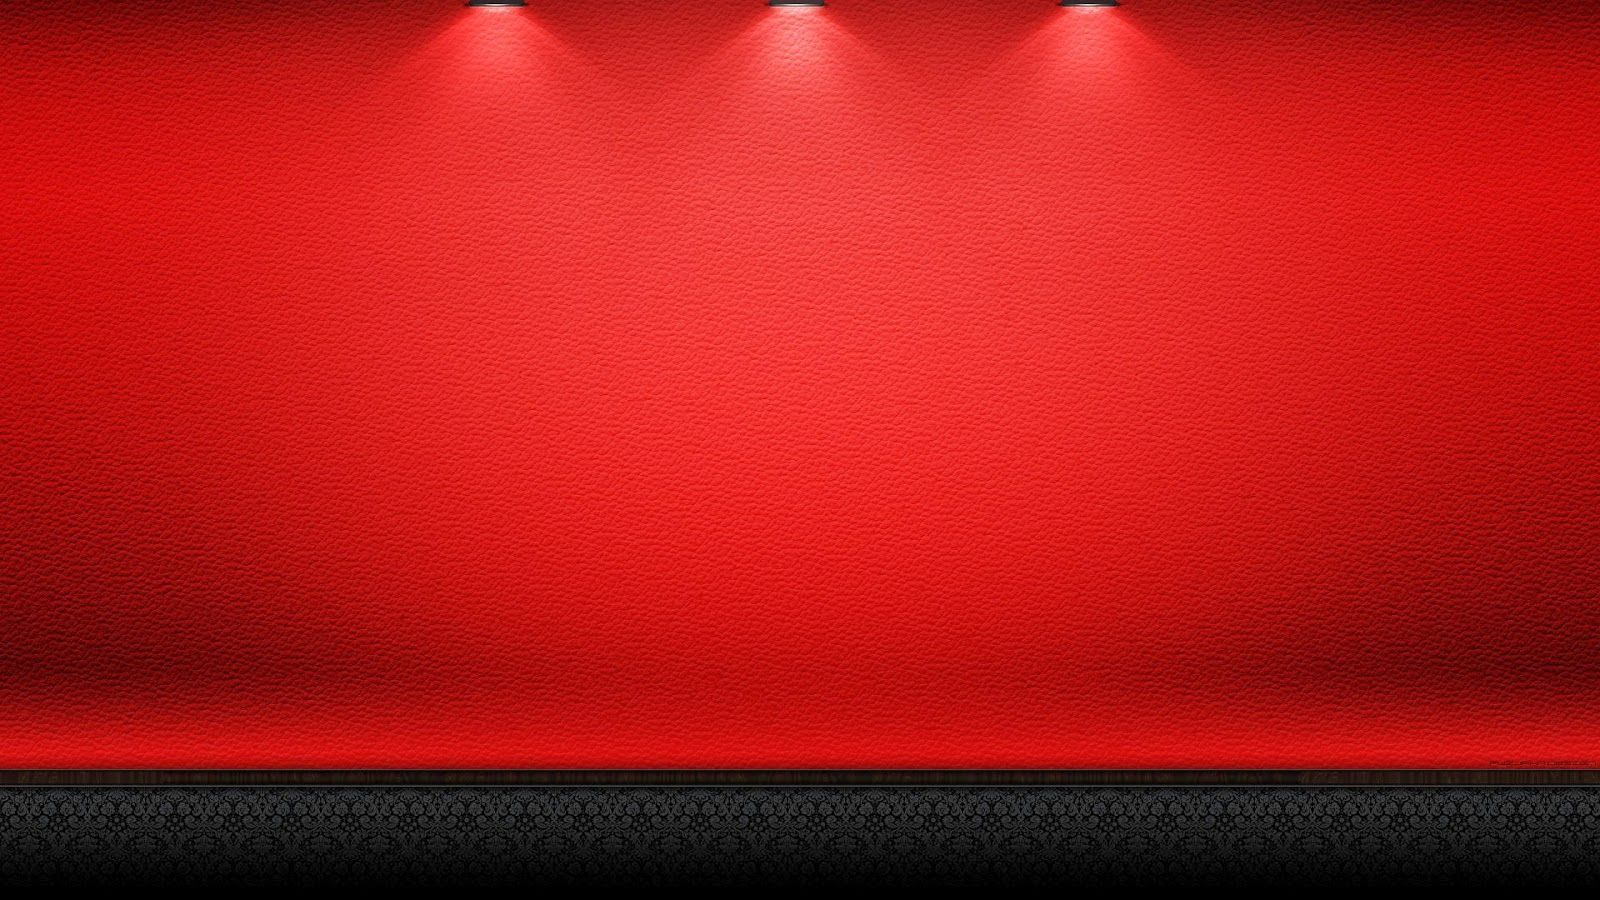 Black And Red Abstract Wallpaper 25 Red Background Designs Hd 1600x900 Wallpaper Teahub Io